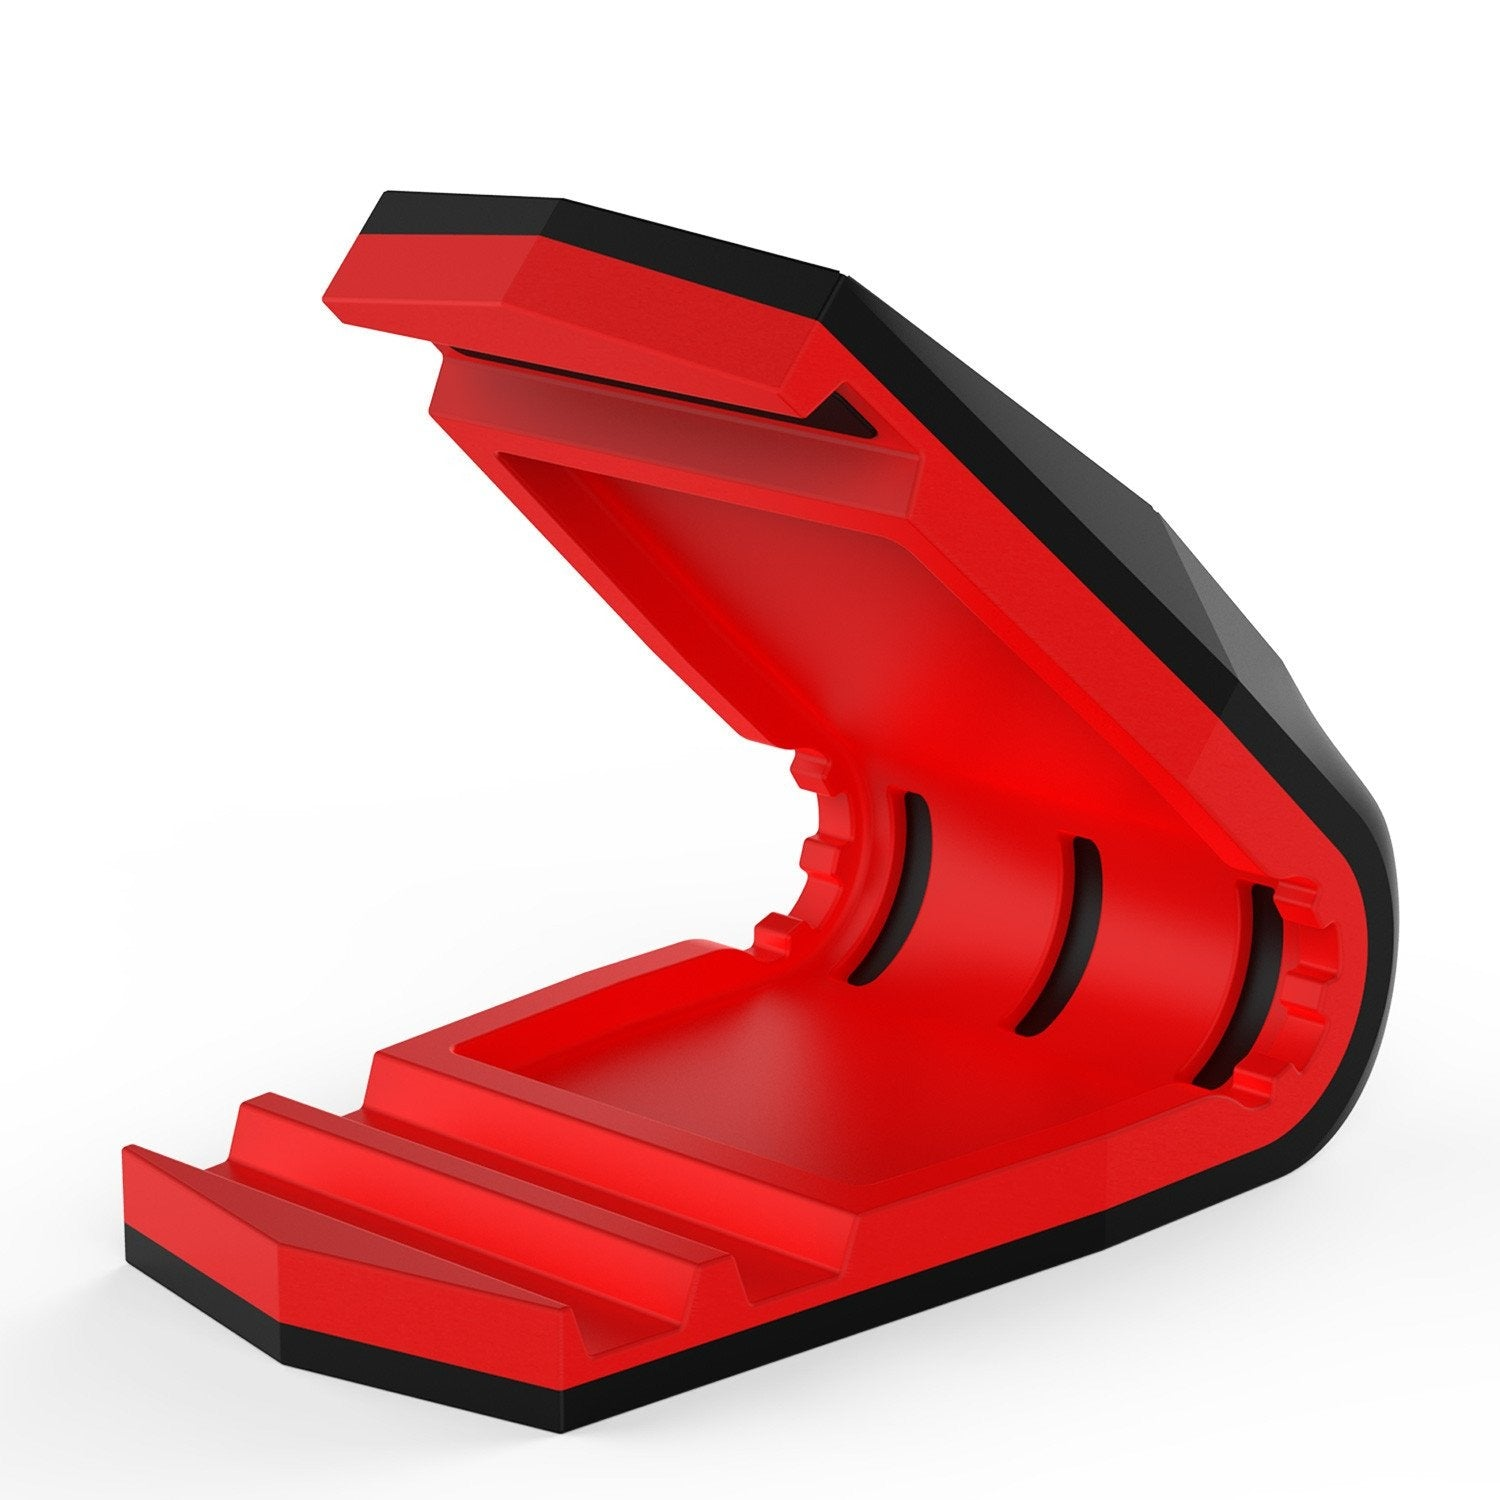 PUNKCASE Viper Car Phone Holder Red, Universal Dashboard Mount for all Smartphones, Low Profile & Sleek Design, One Hand Operation, Secure Hold even in Hot Temperatures